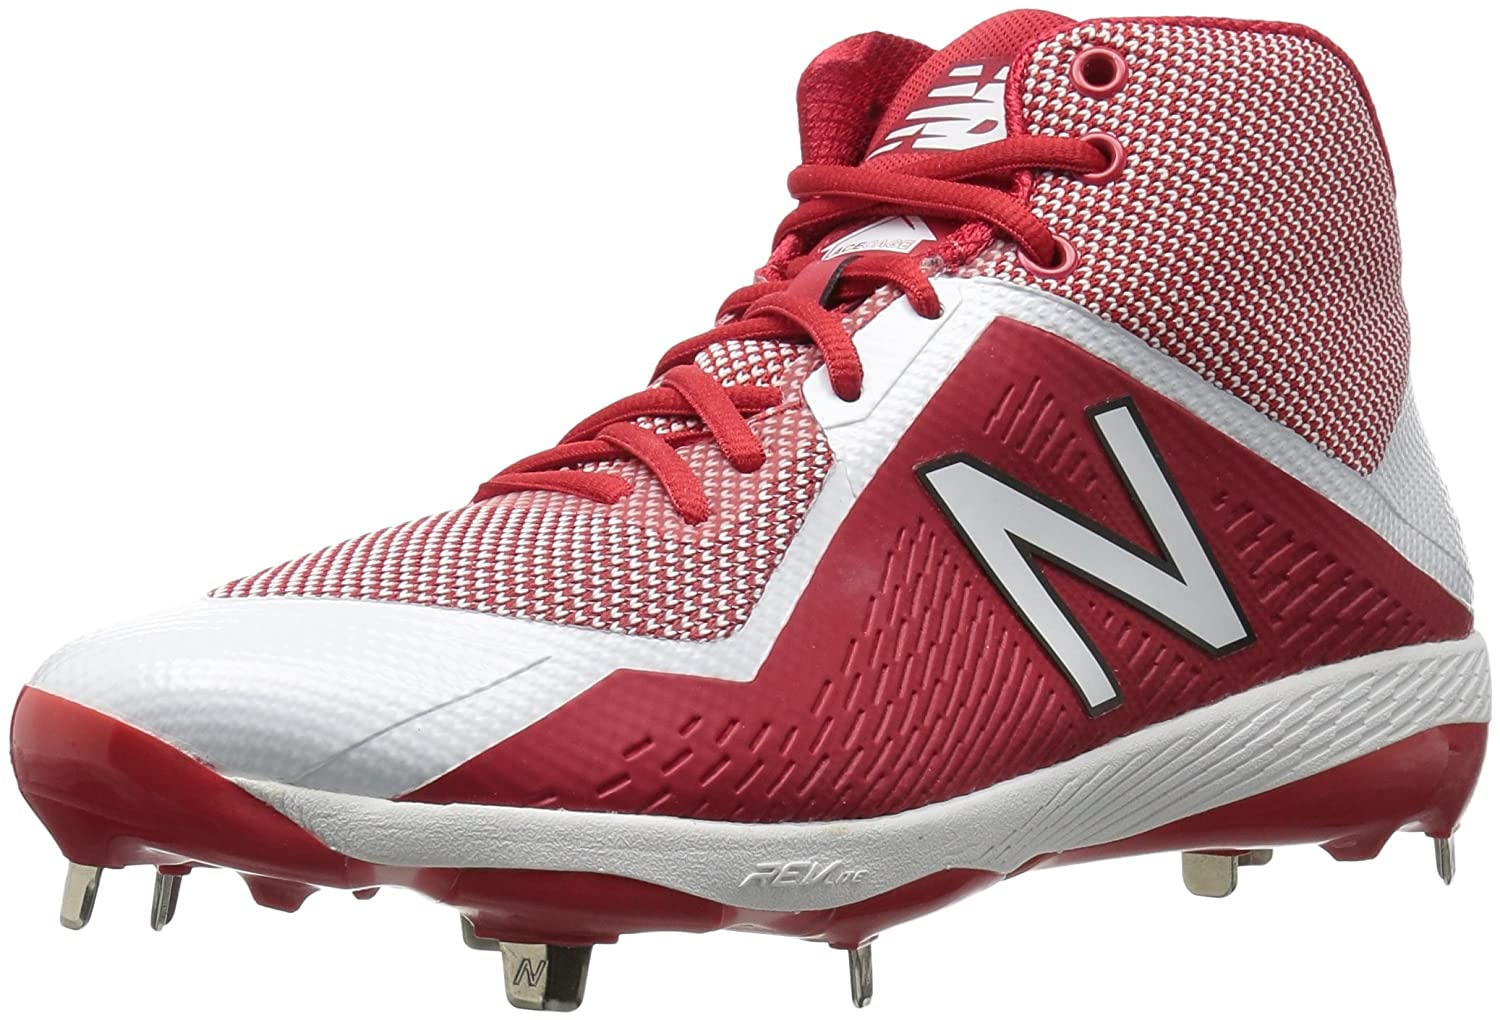 New Balance Men's M4040v4 Metal Baseball Shoe B01N66HZZ0 5.5 D(M) US|Red/White